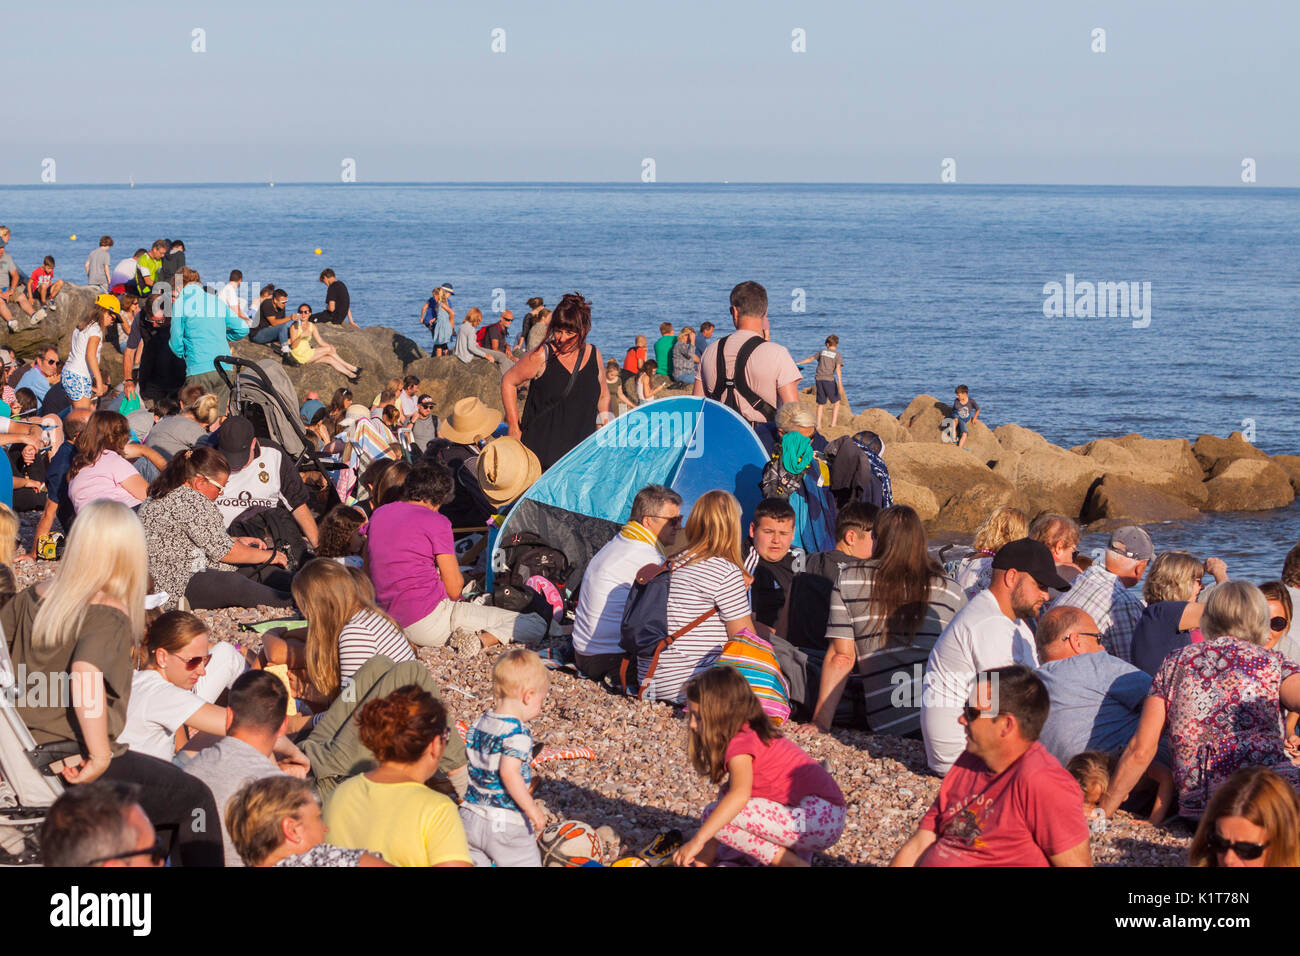 A large crowd packed onto the beach at,Sidmouth, waiting for the Red Arrows. - Stock Image